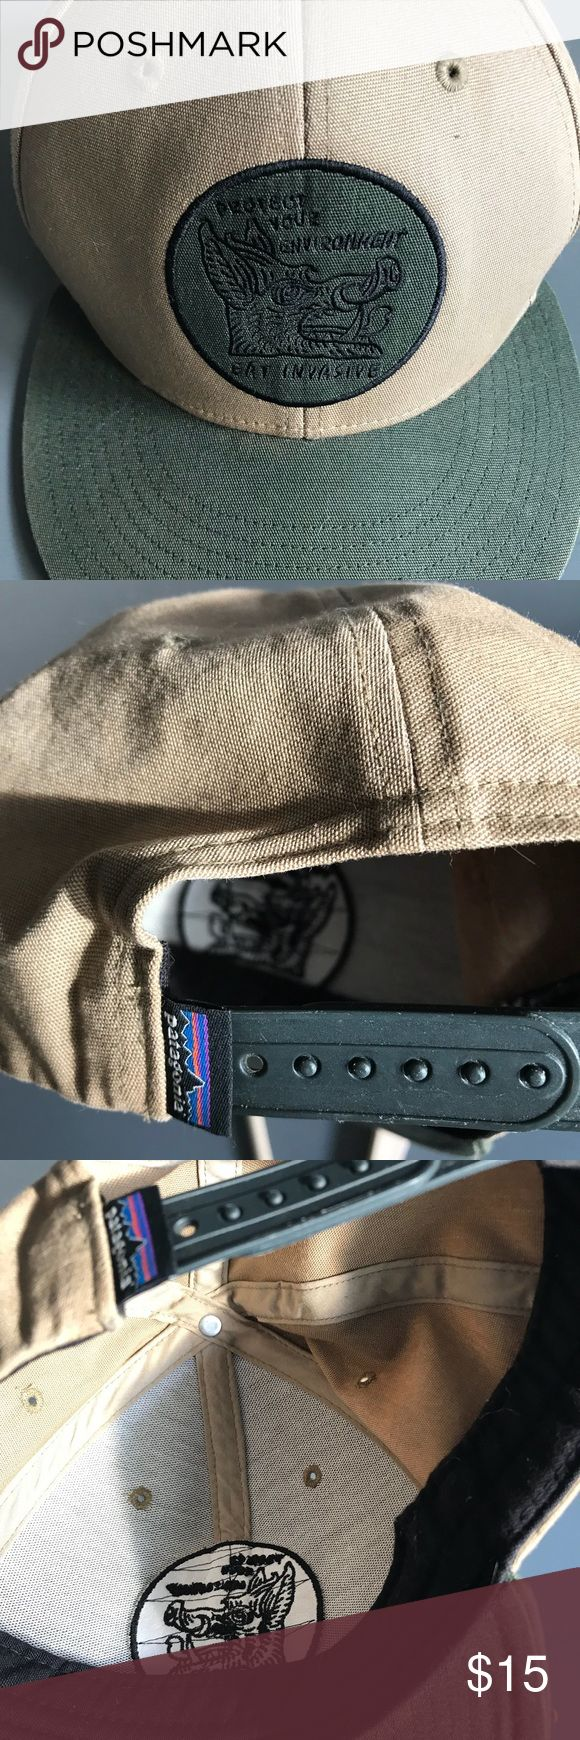 Patagonia SnapBack 'eat invasives' hat Rarely worn and well cared for - basically in perfect condition Patagonia Accessories Hats